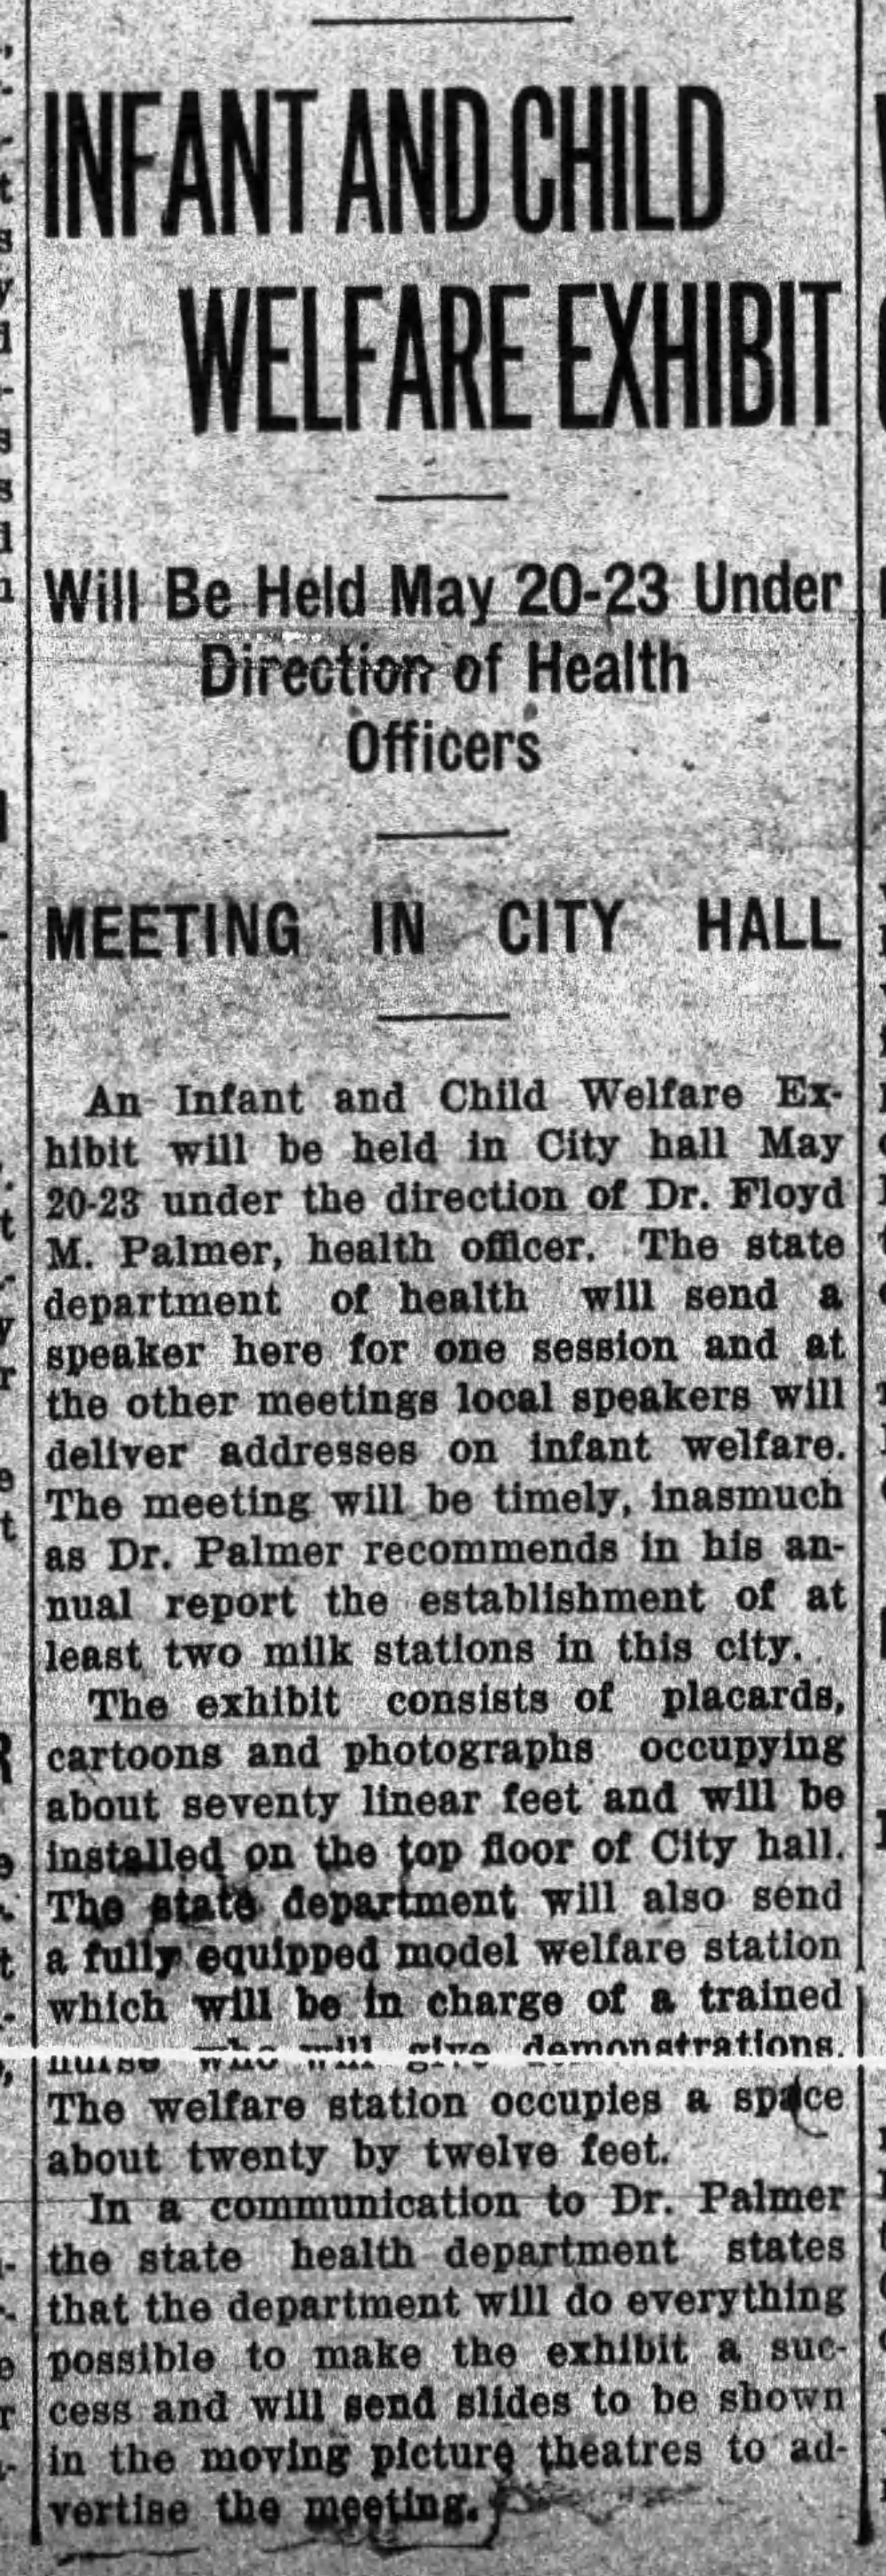 """The Post-Star, Tuesday, May 5, 1914 newspaper article """"Infant and Child Welfare Exhibit"""" to be held May 20-23, 1914 in Glens Falls, NY."""